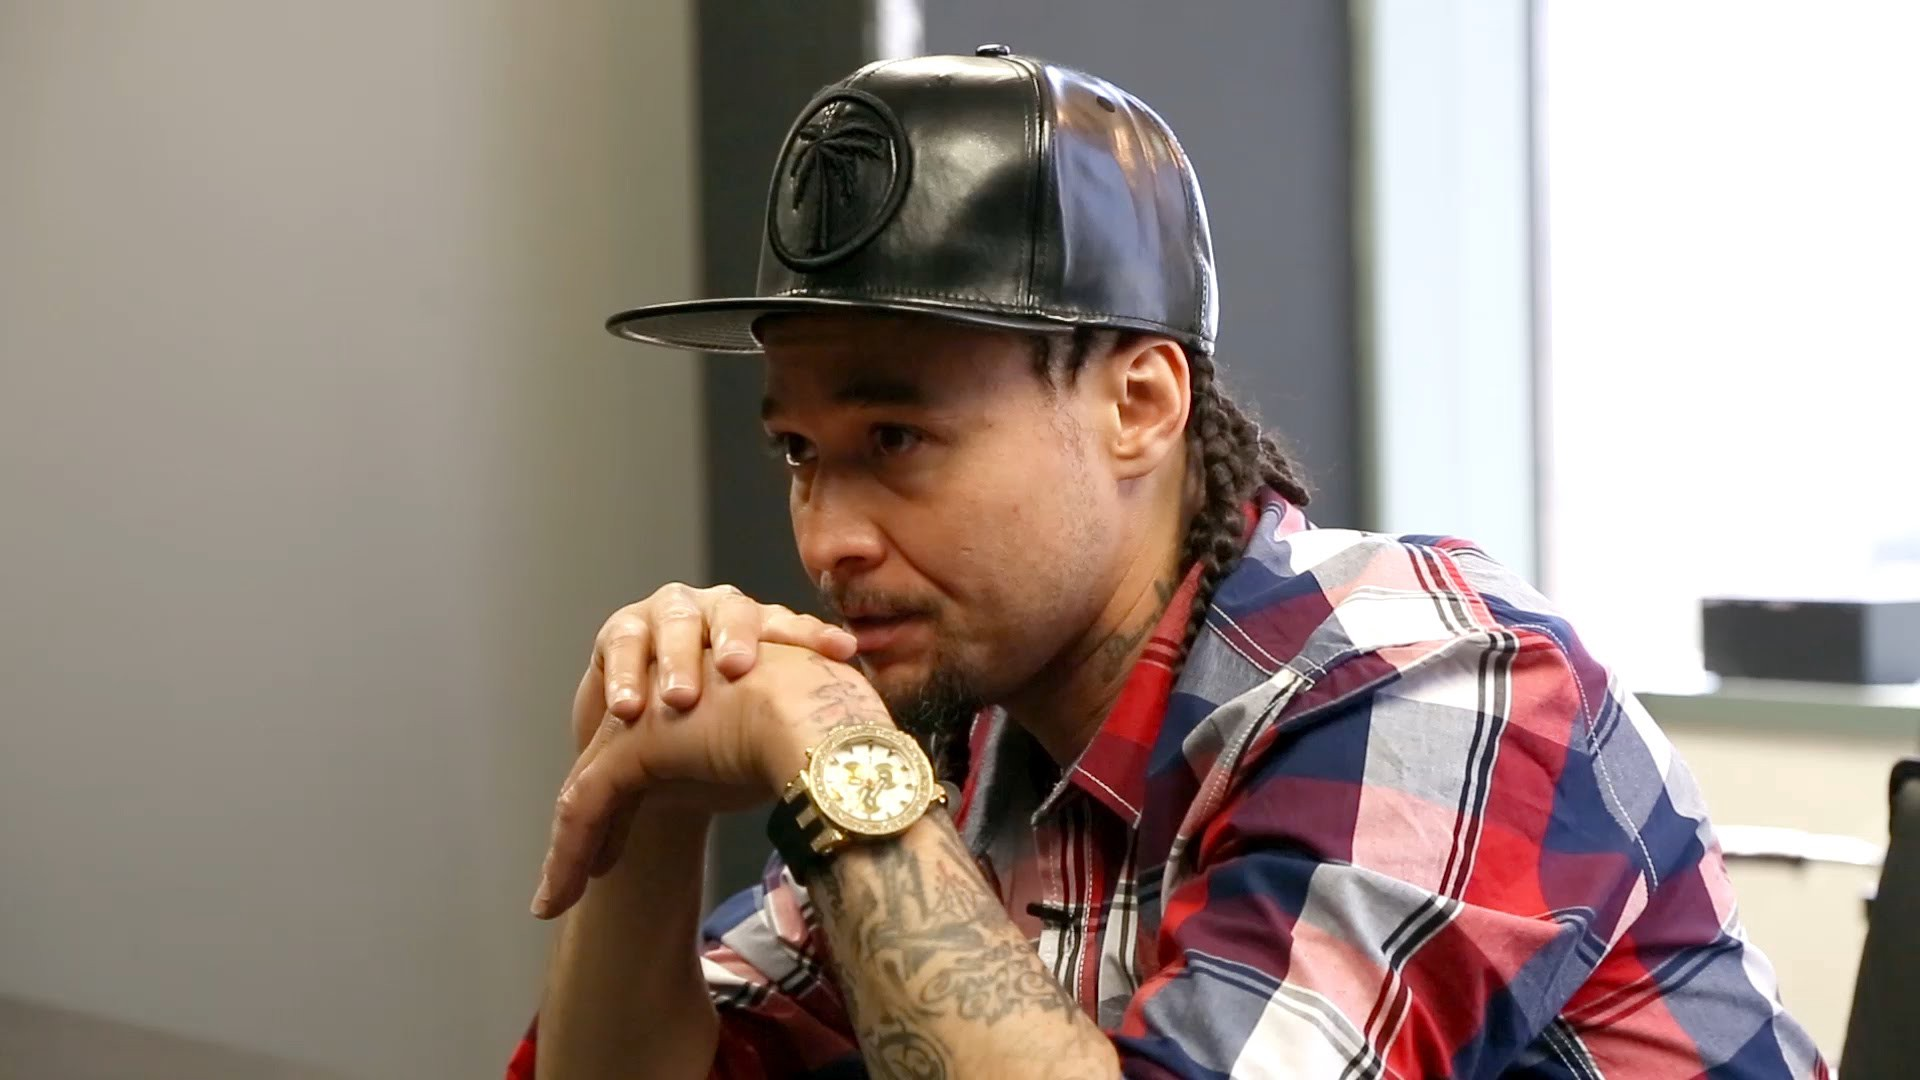 ranna royce dating bizzy bone Bizzy bone drops his latest track ft april on vod april 3rd three best friends explore the world of online swipe dating in los angeles and royce da 5 '9.